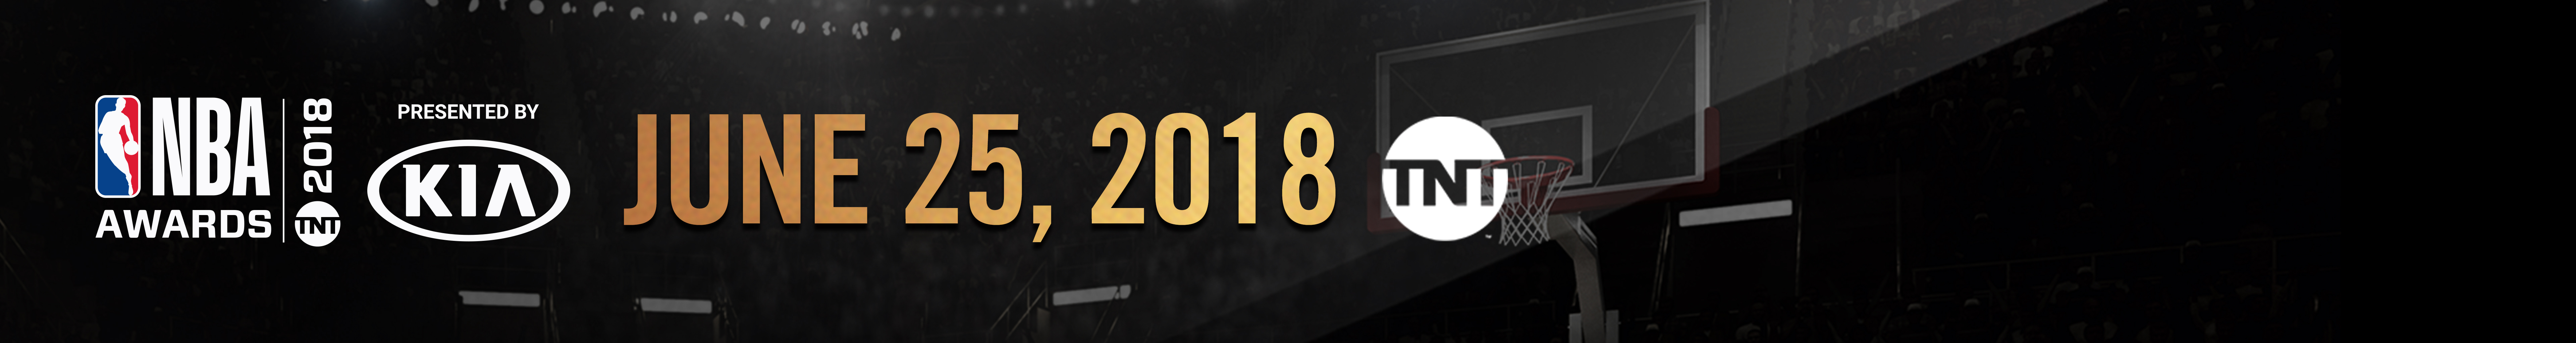 2018 NBA Awards